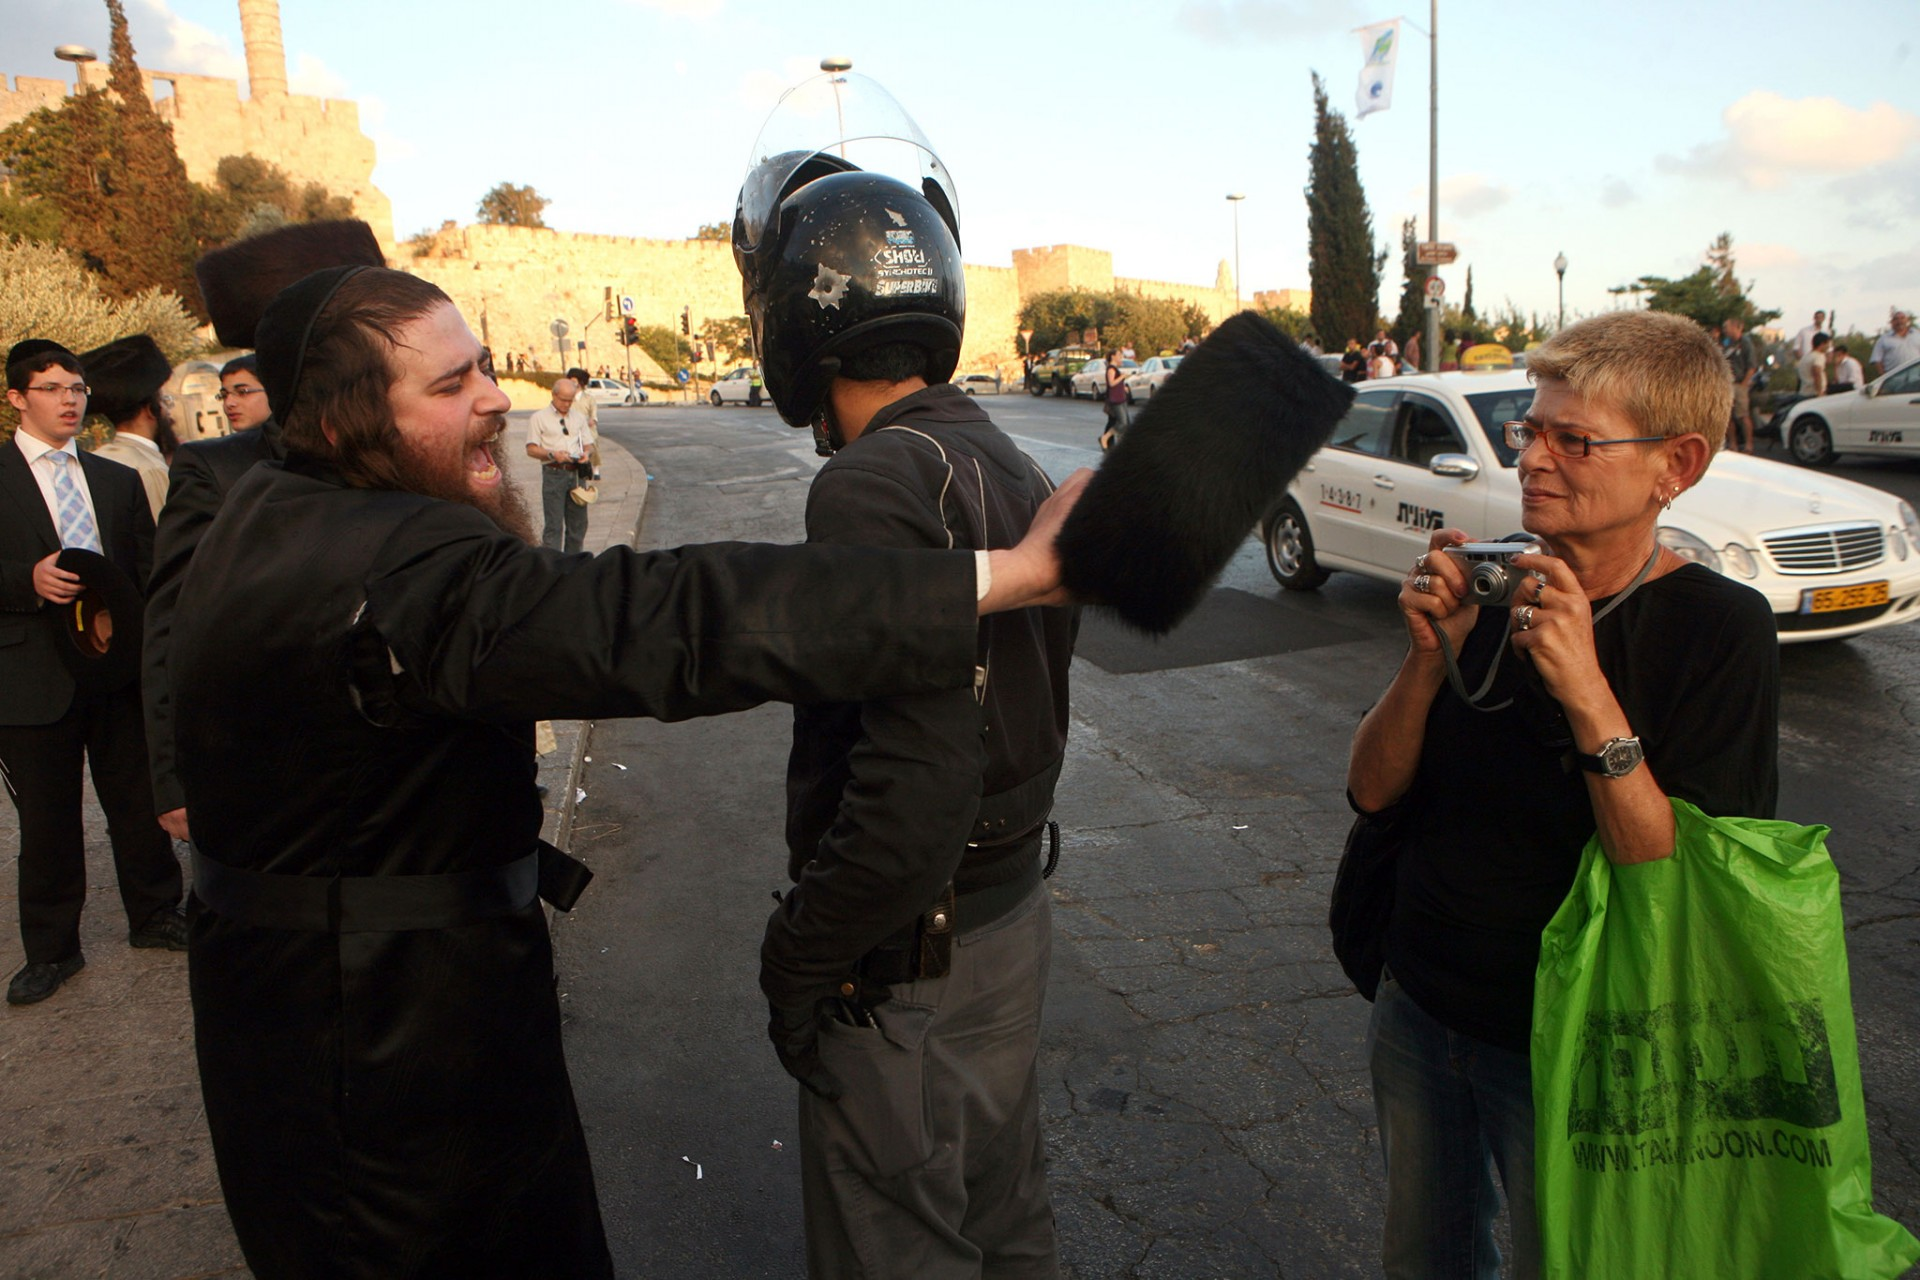 Demonstration Against the opening of a controversial parking lot during the shabbat, Jerusalem 2009